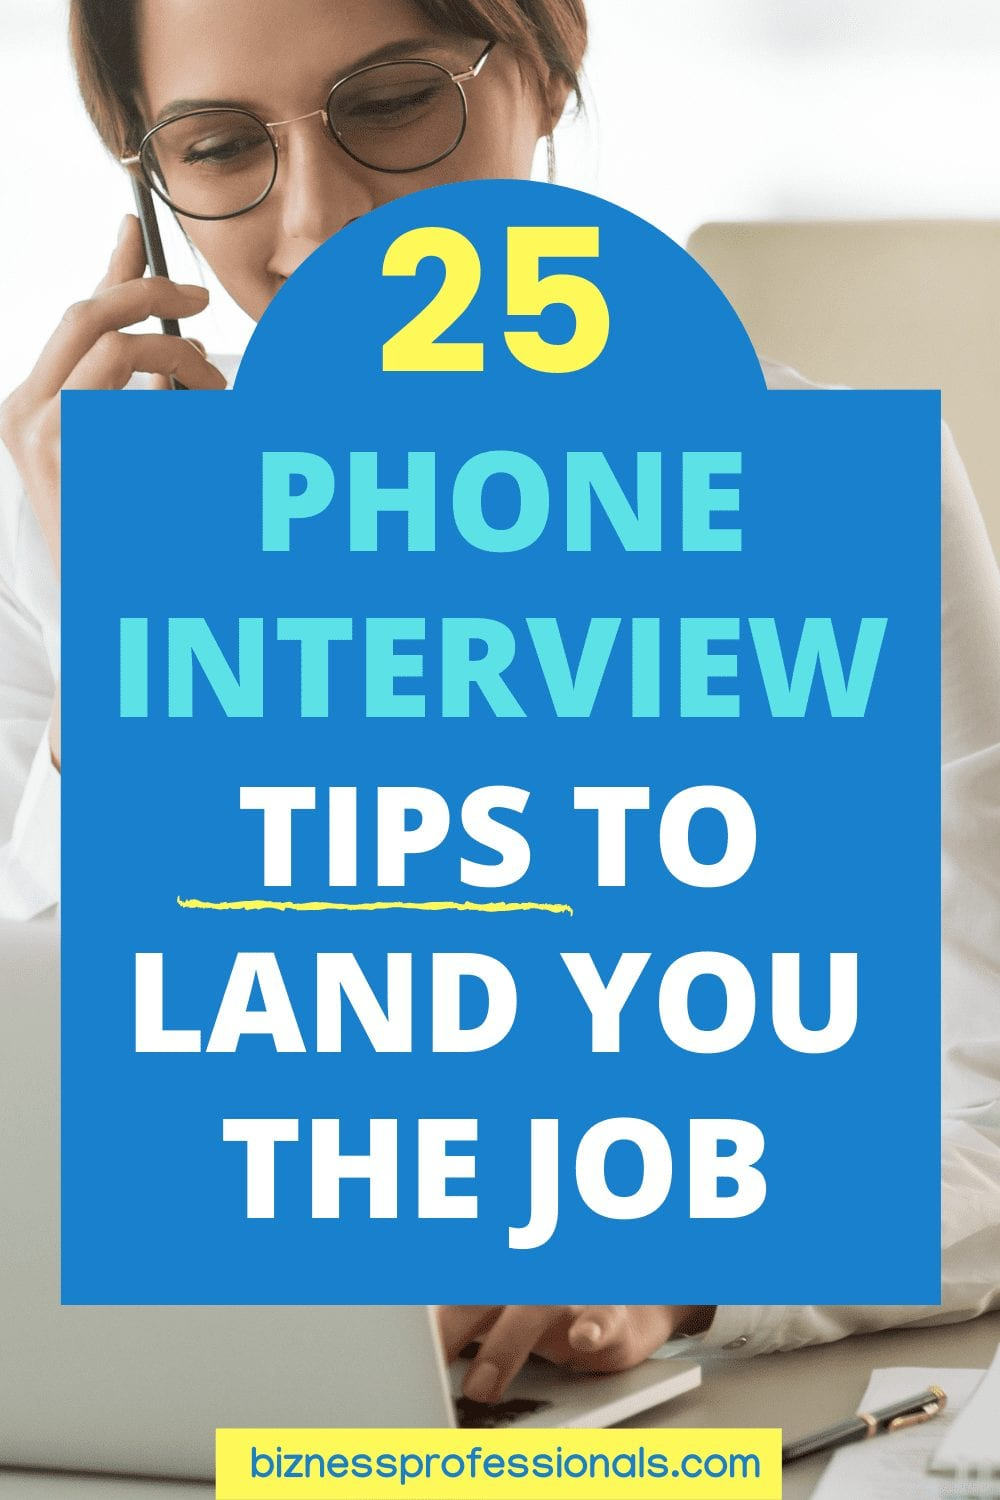 25 phone interview tips to land you the job